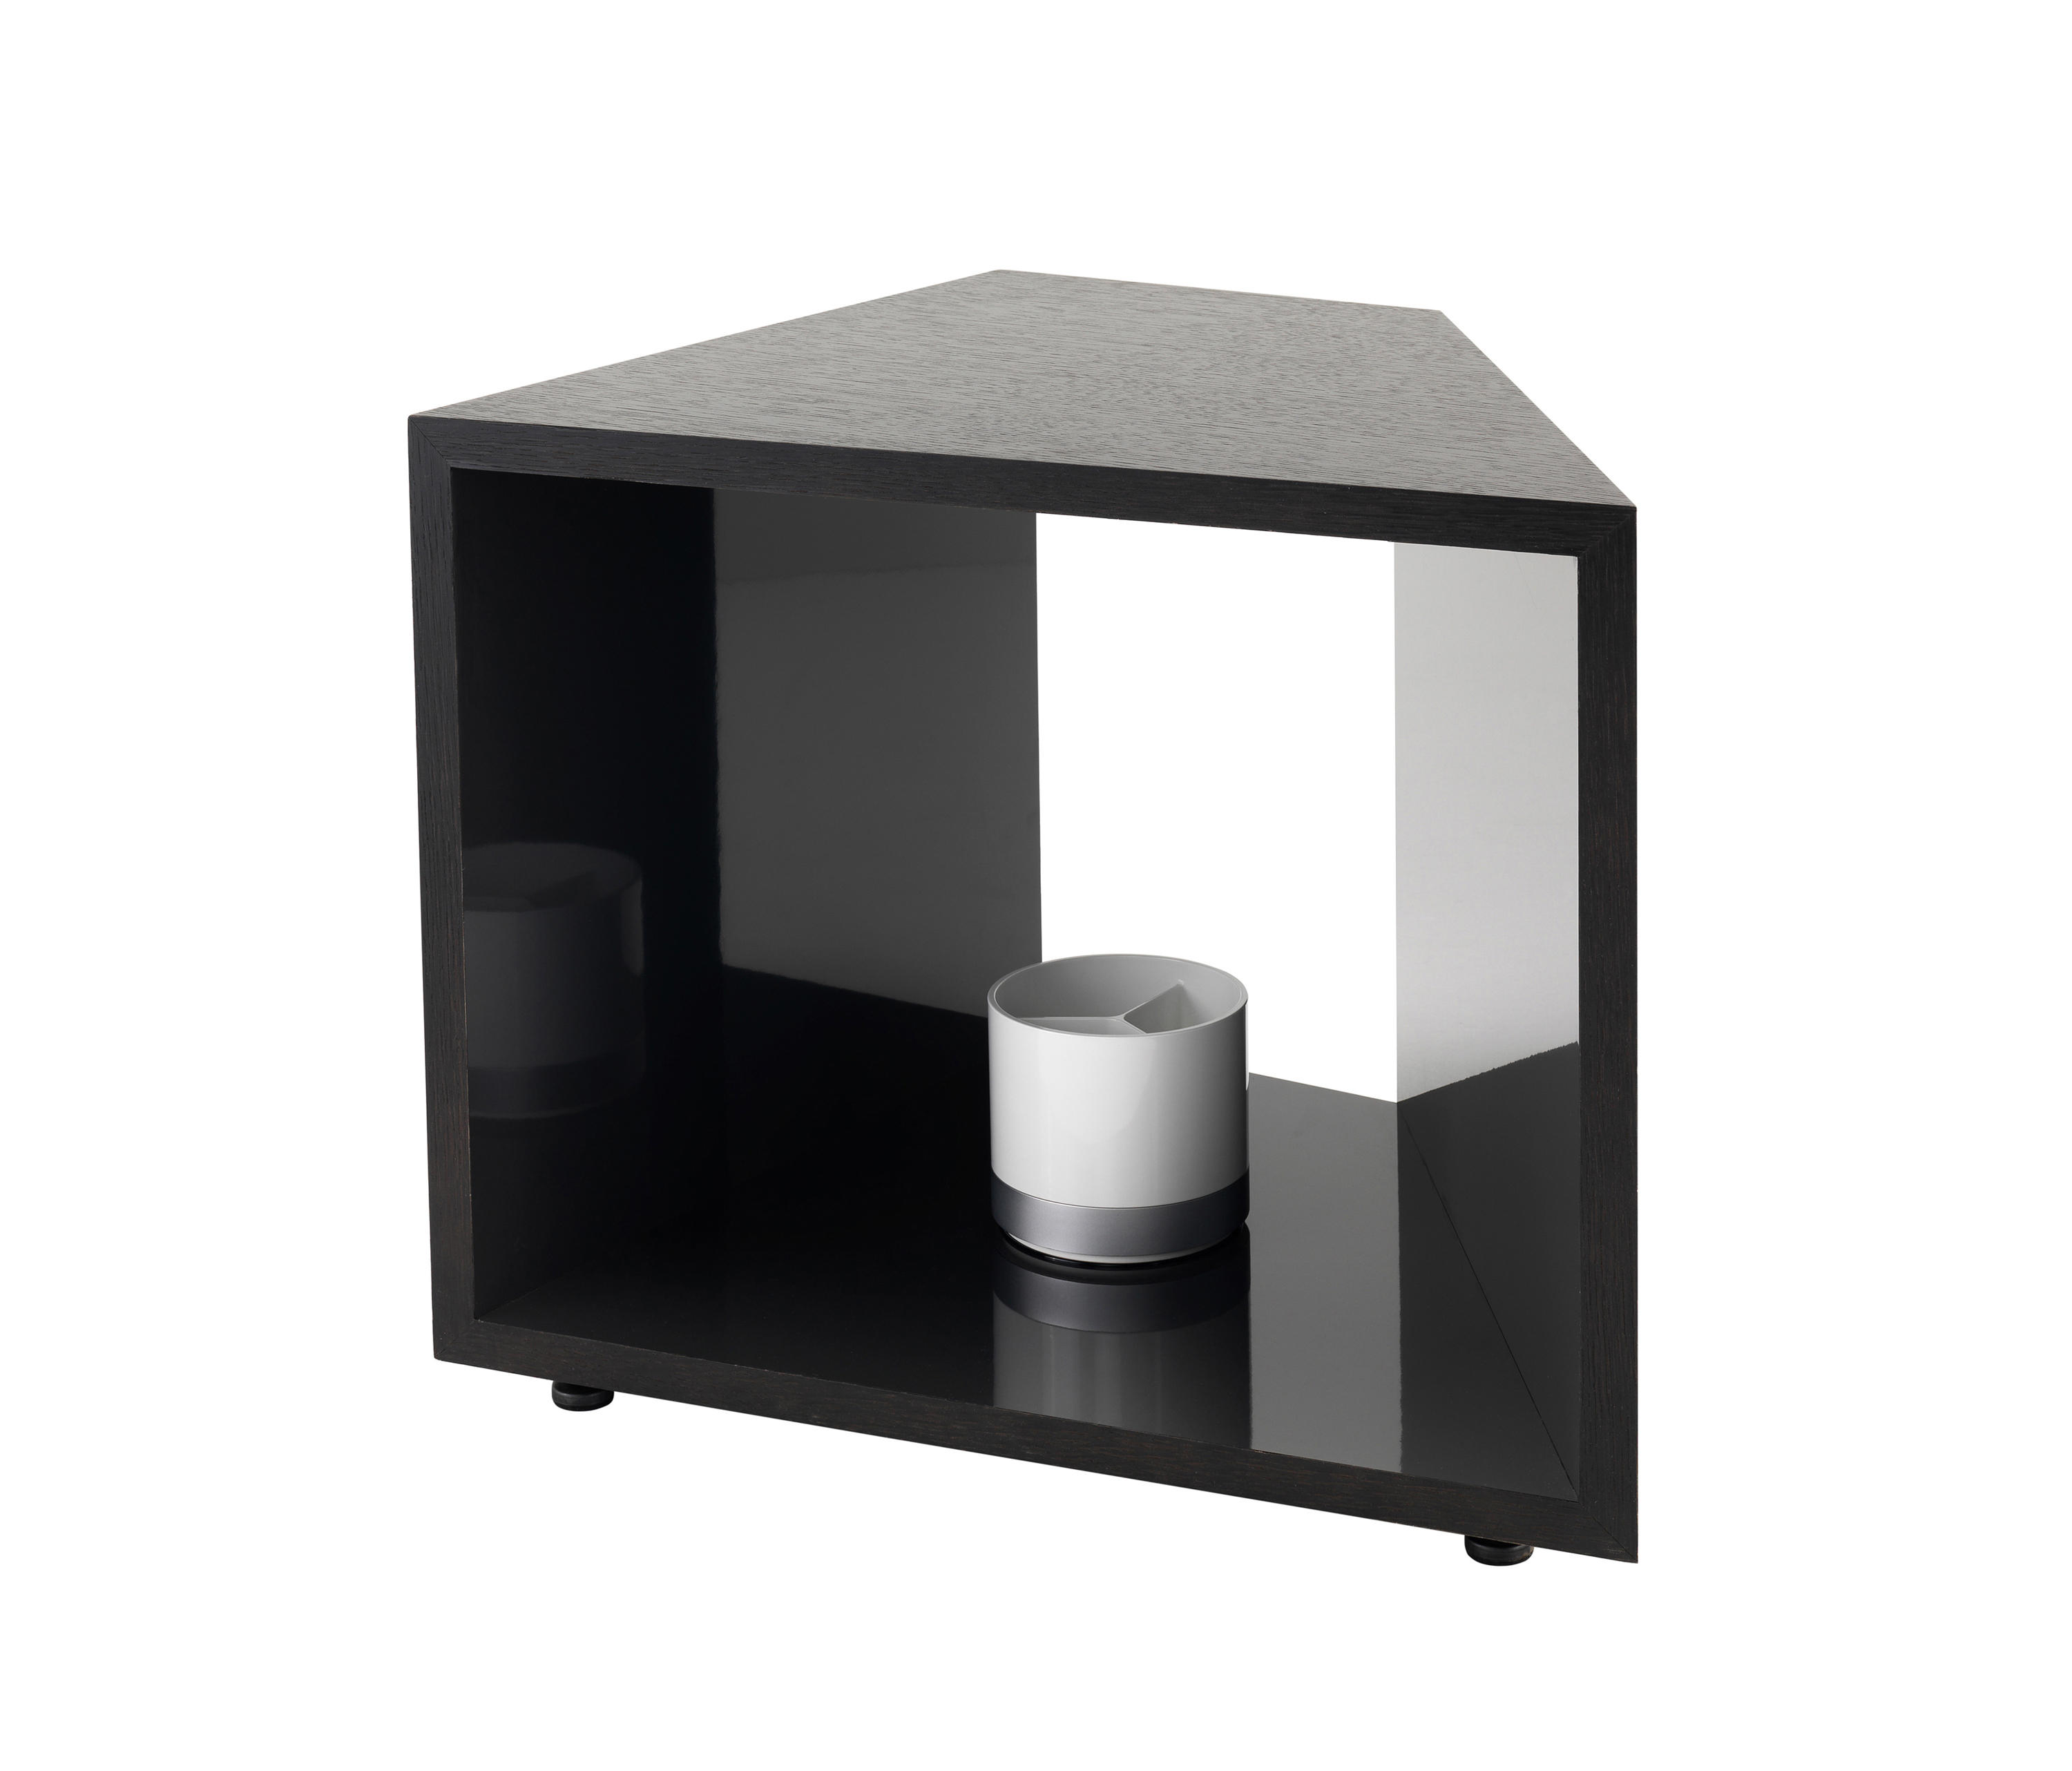 Sebastopol occasional table side tables from coalesse for Occasional table manufacturers